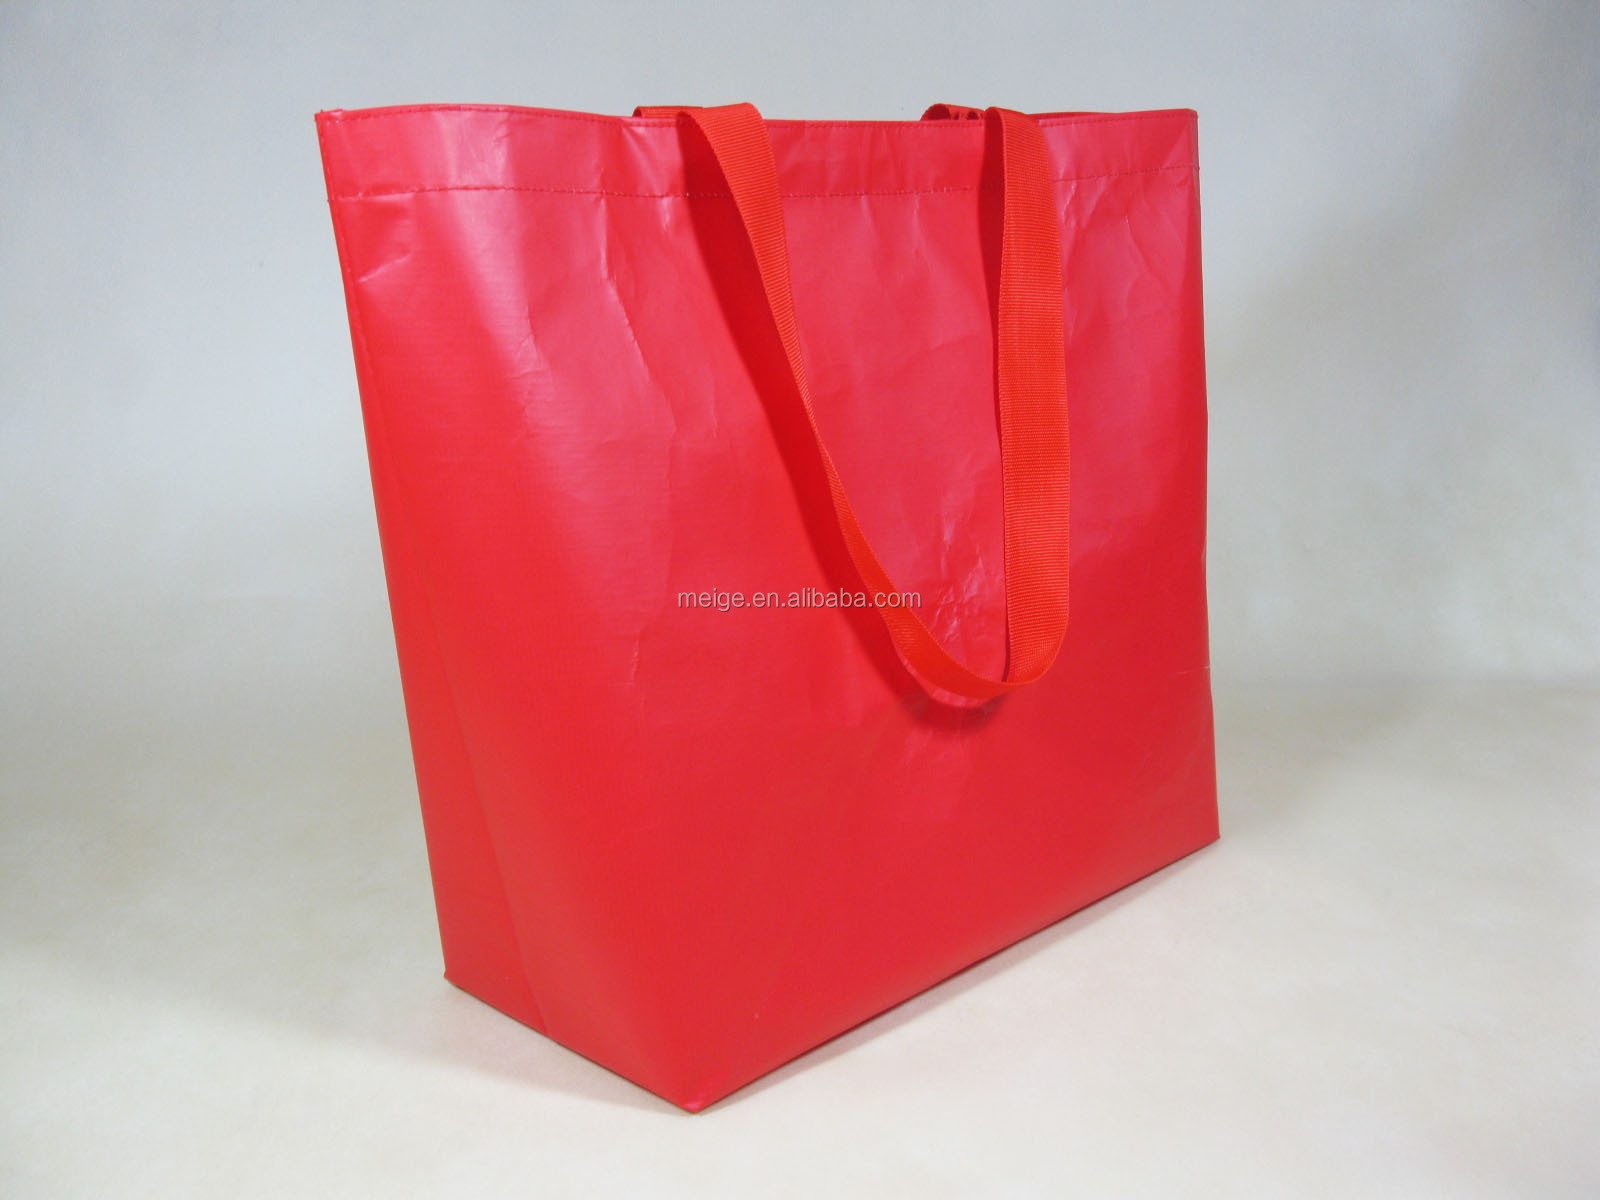 BSCI audit factory jute bags manufacturers in delhi/non woven technology/non woven bag